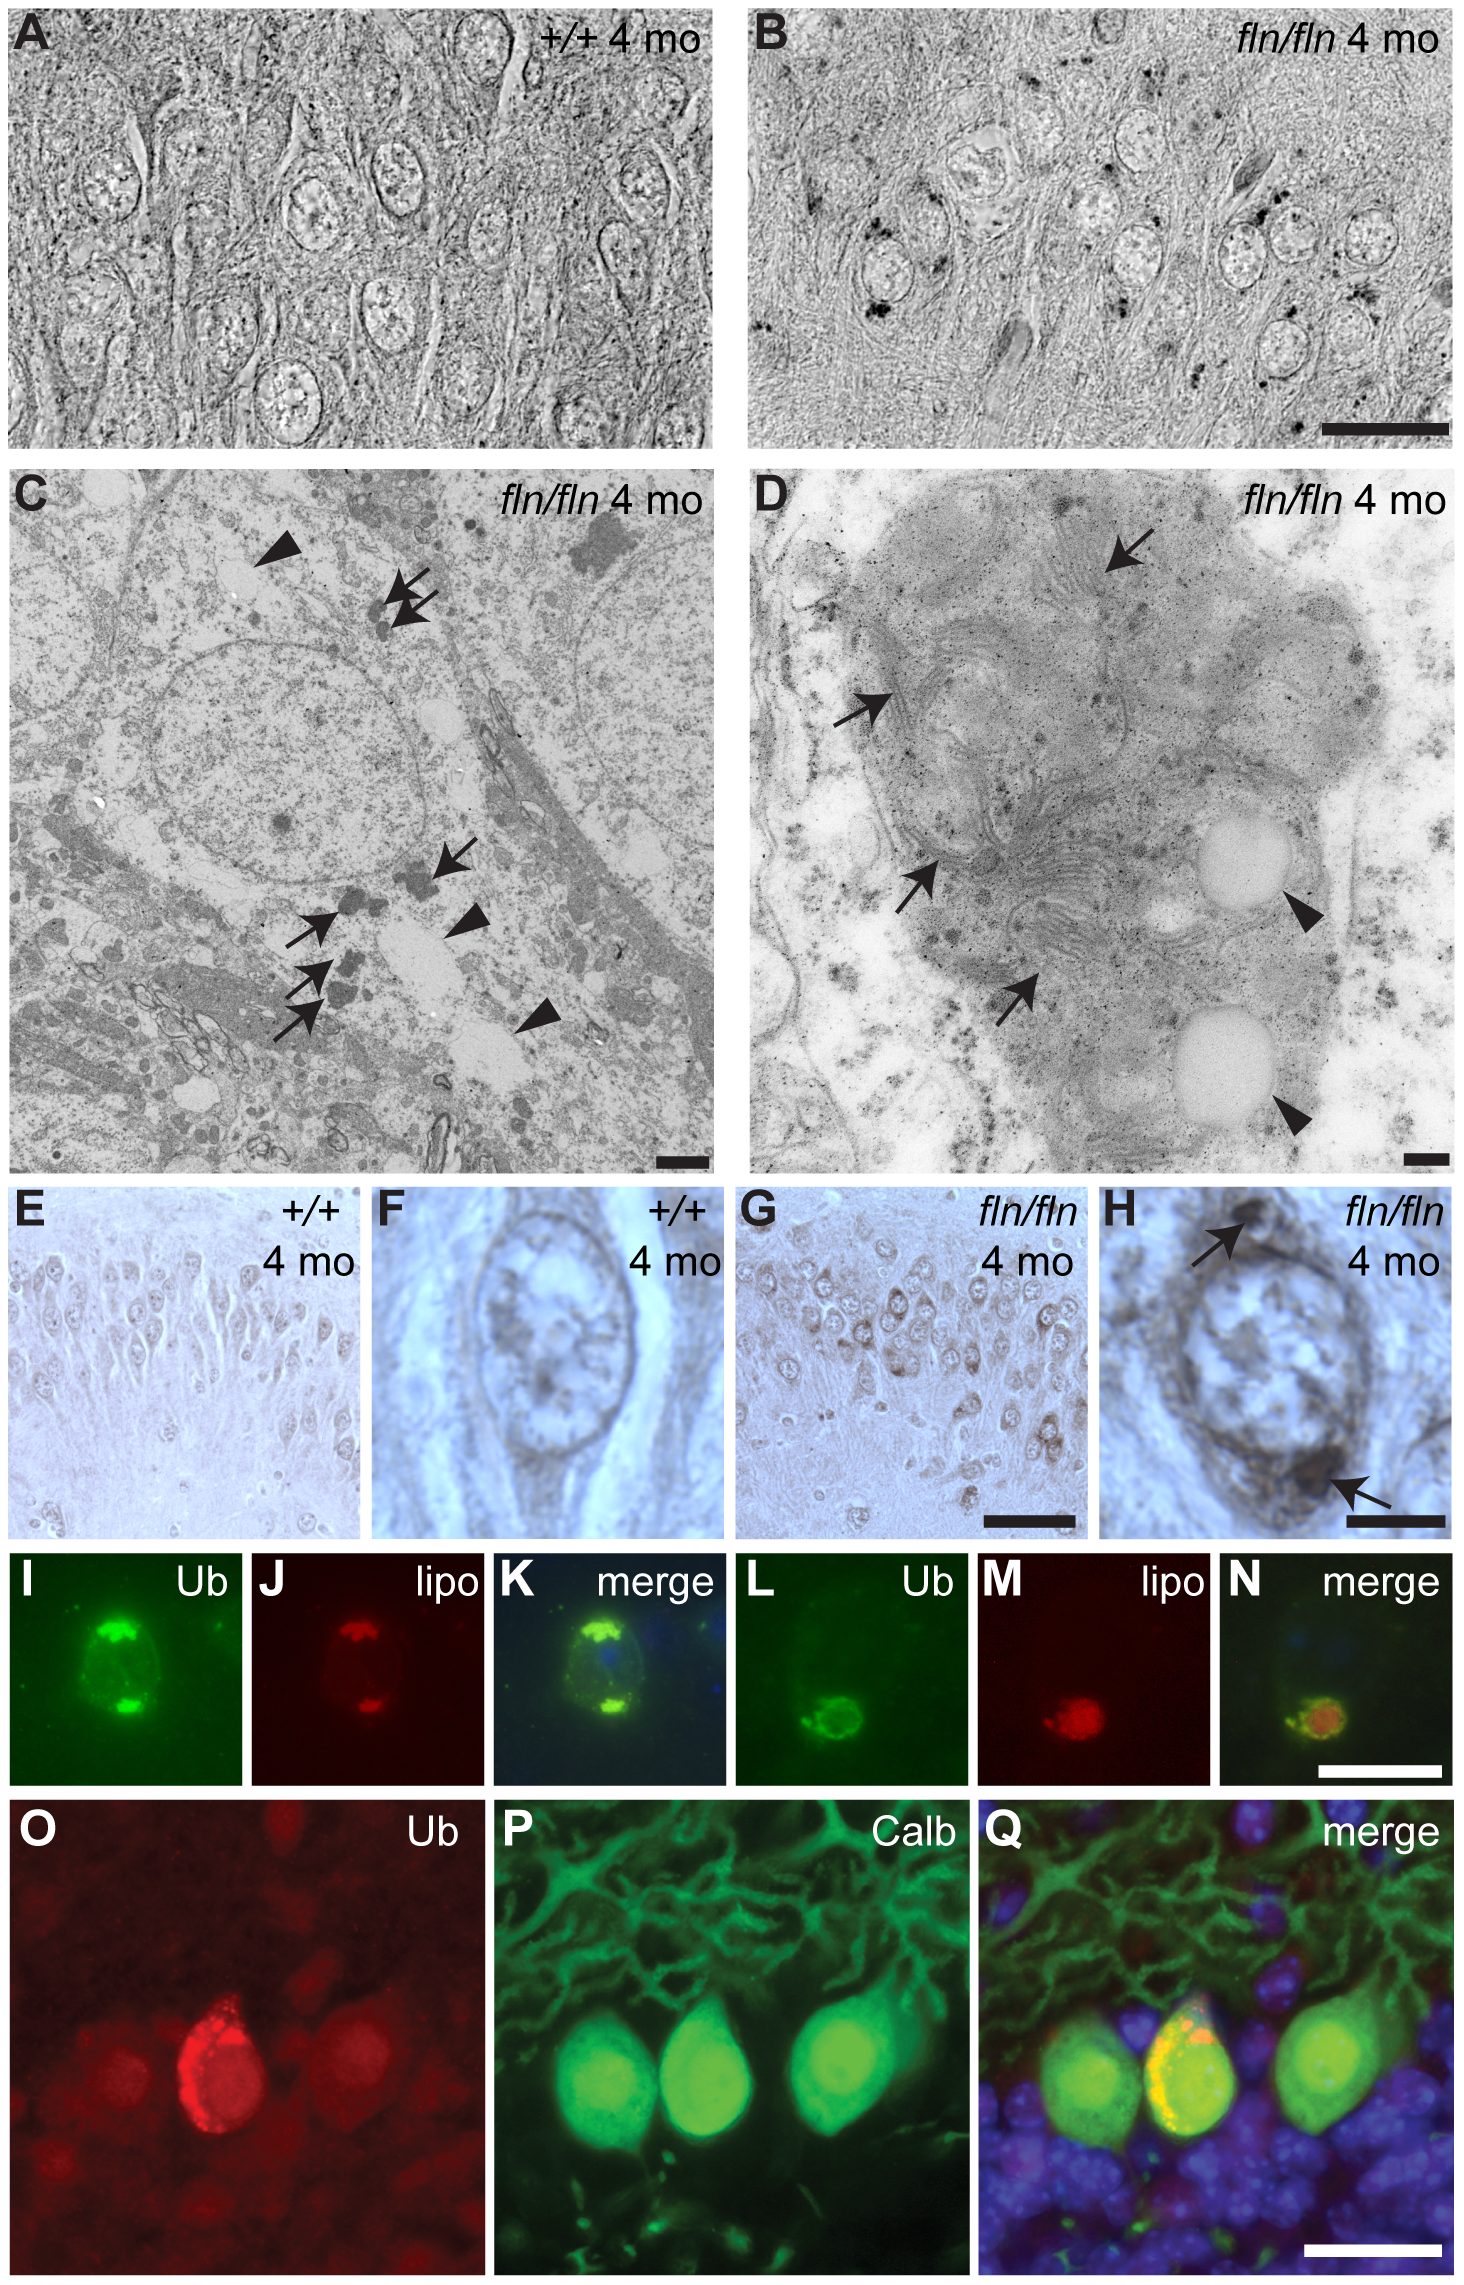 Lipofuscin and ubquitylated protein accumulation in CerS1-deficient neurons.